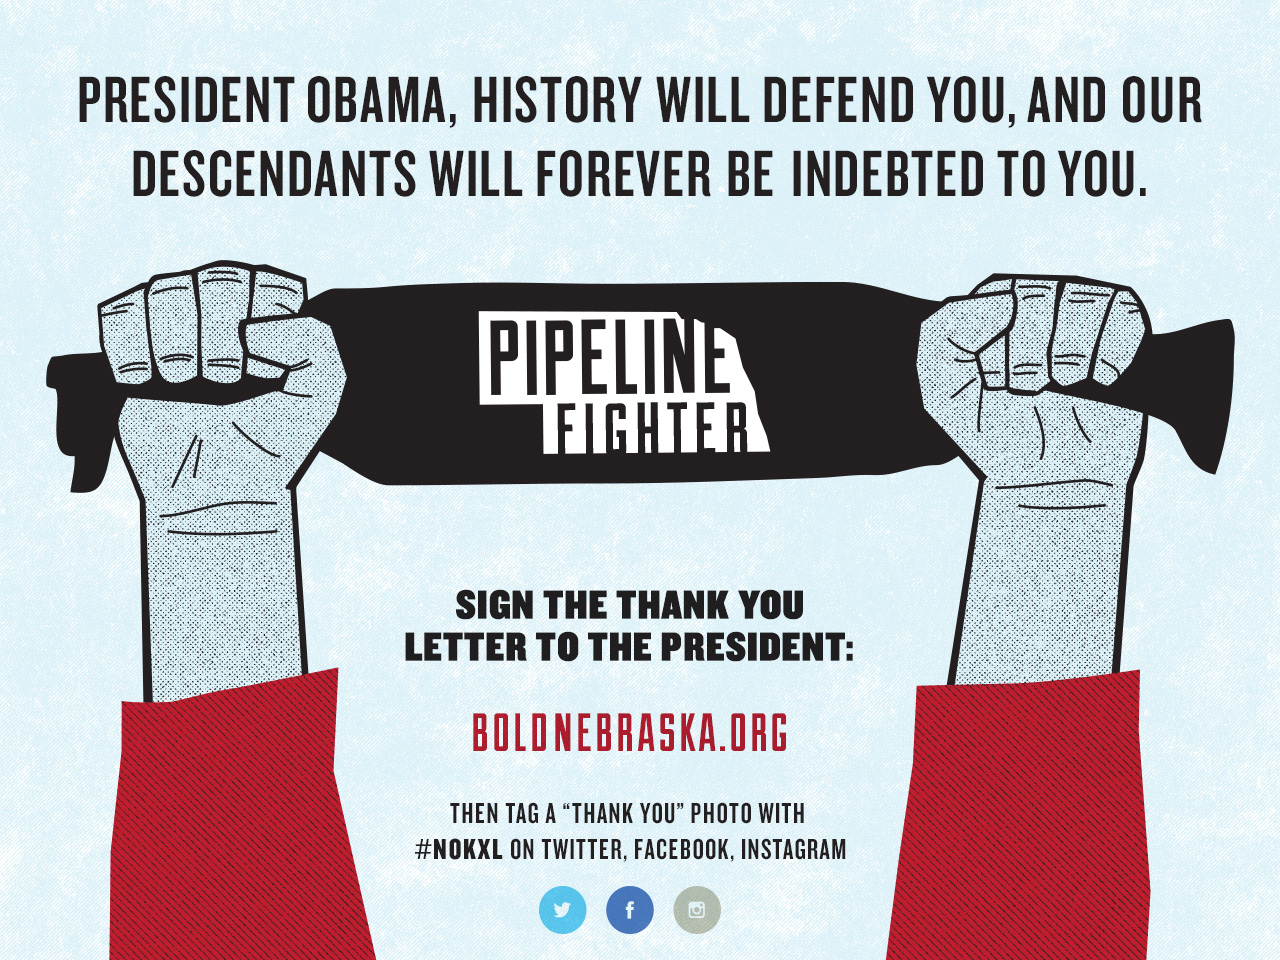 Sign the #NOKXL THANK YOU letter